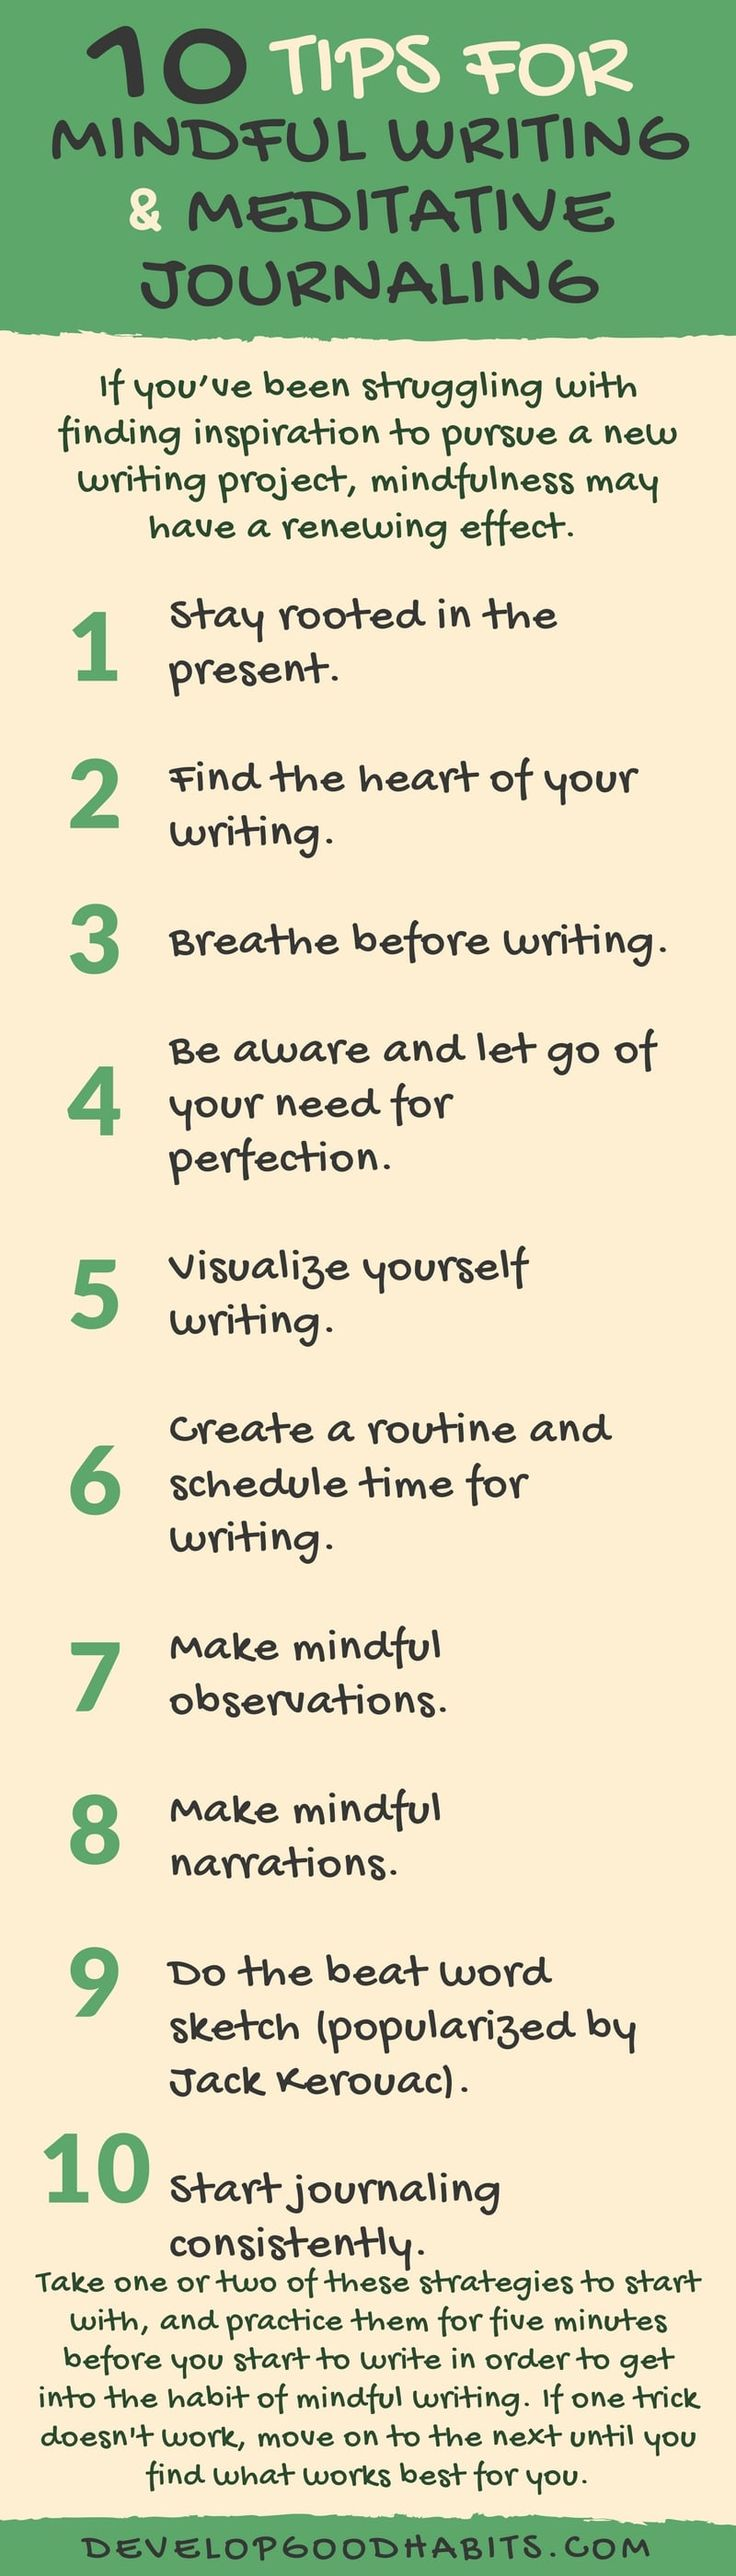 Tips for Mindful Writing & Meditative Journaling | How to write a mindful journal -- 10 ideas/